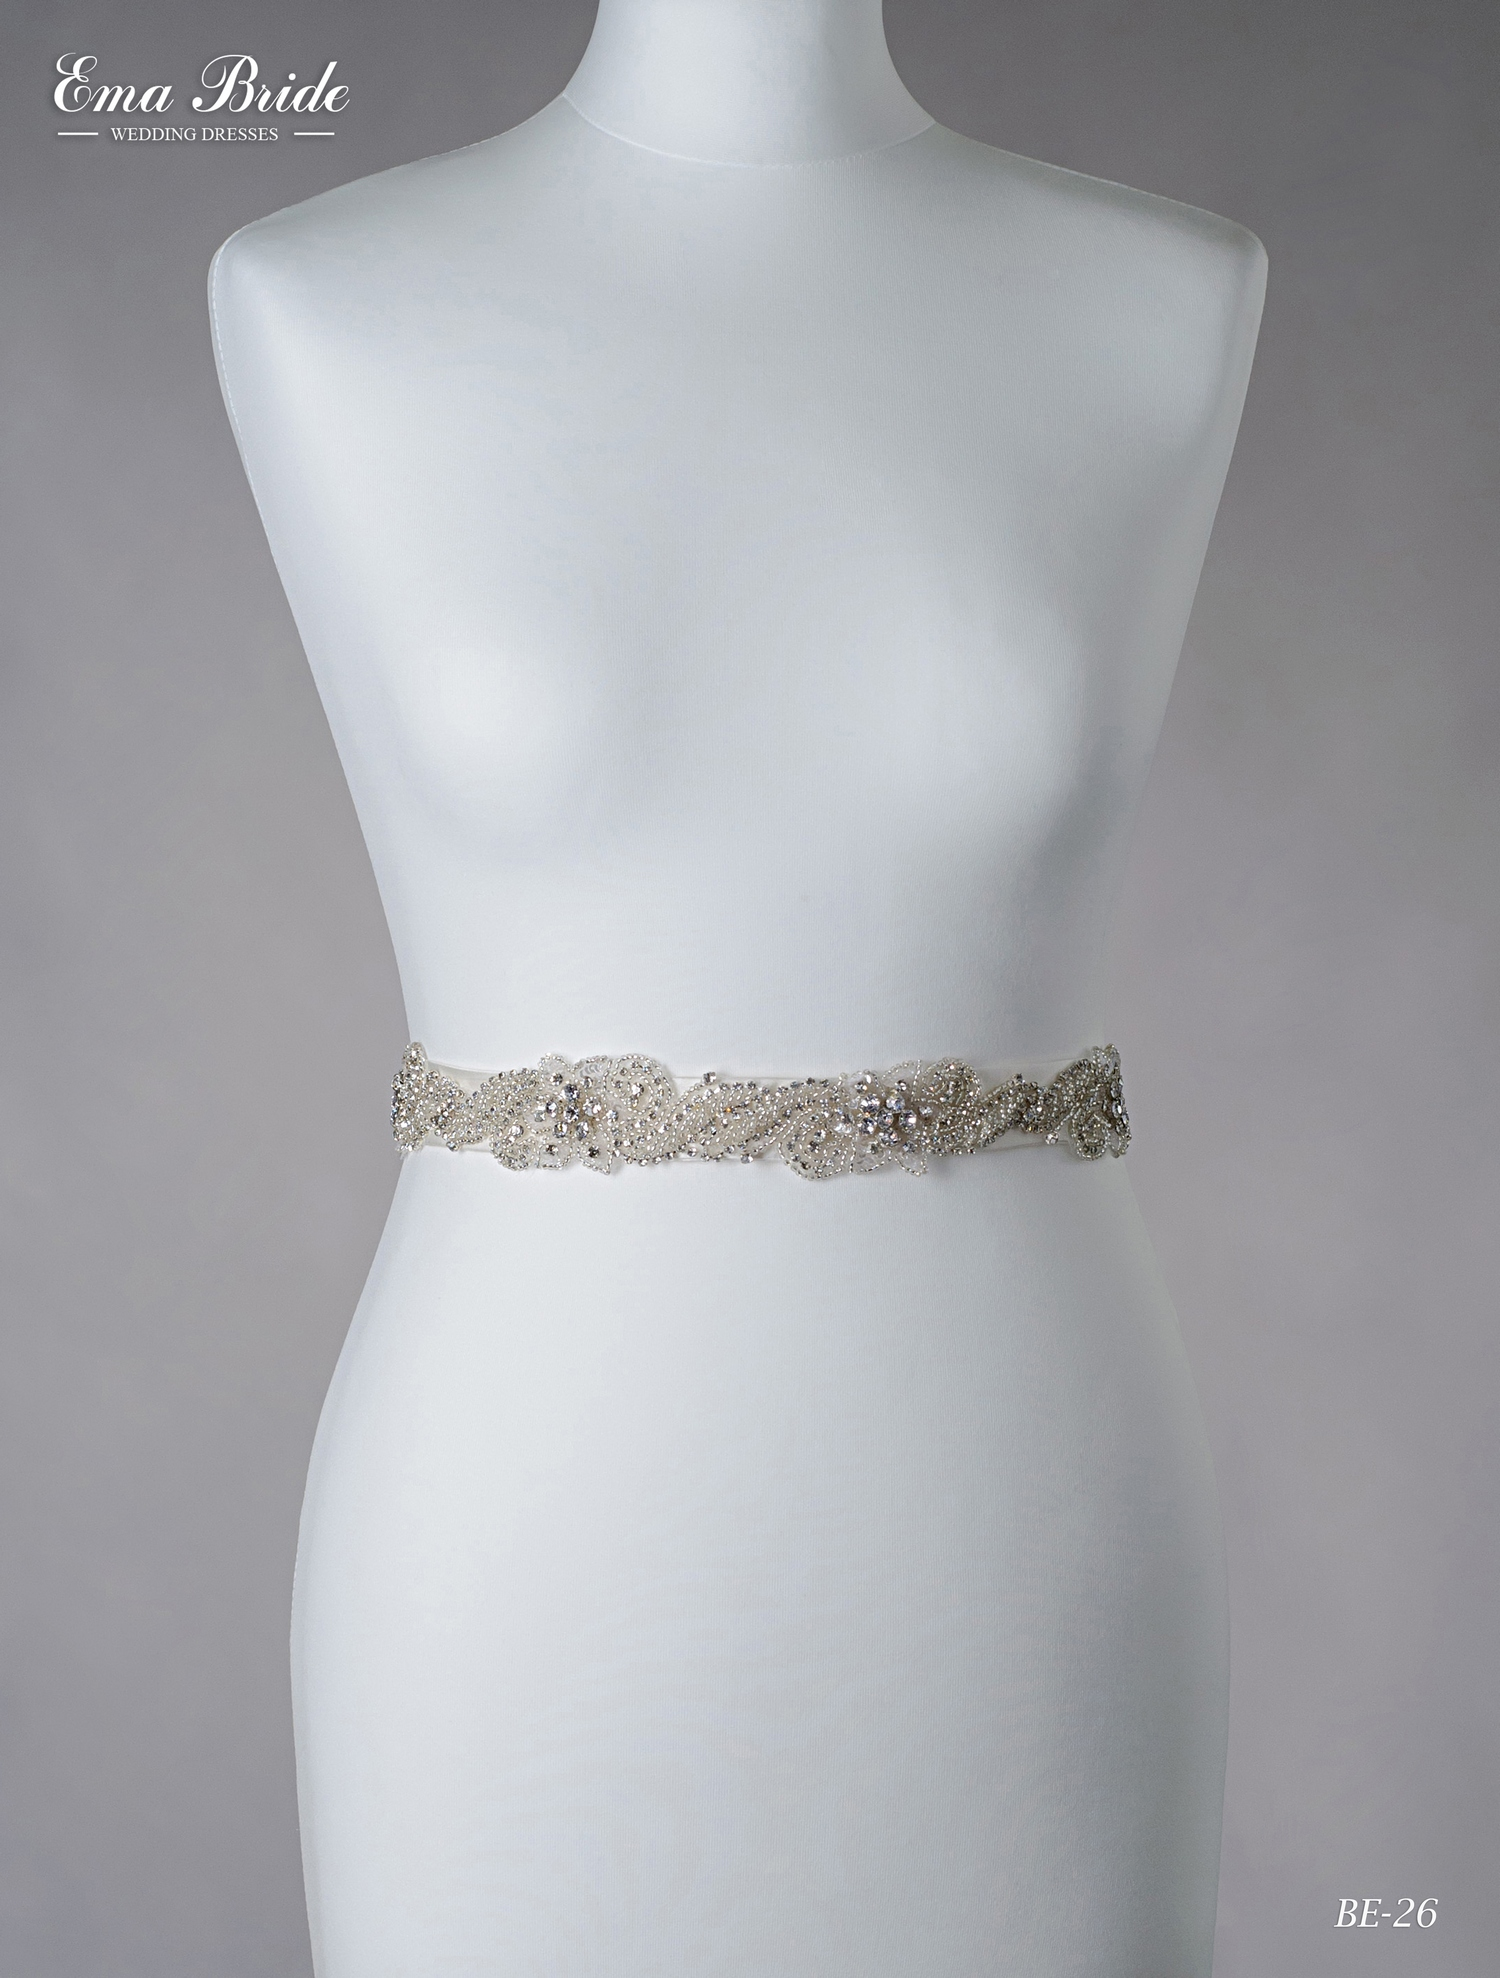 A belt for a wedding dress Be-26